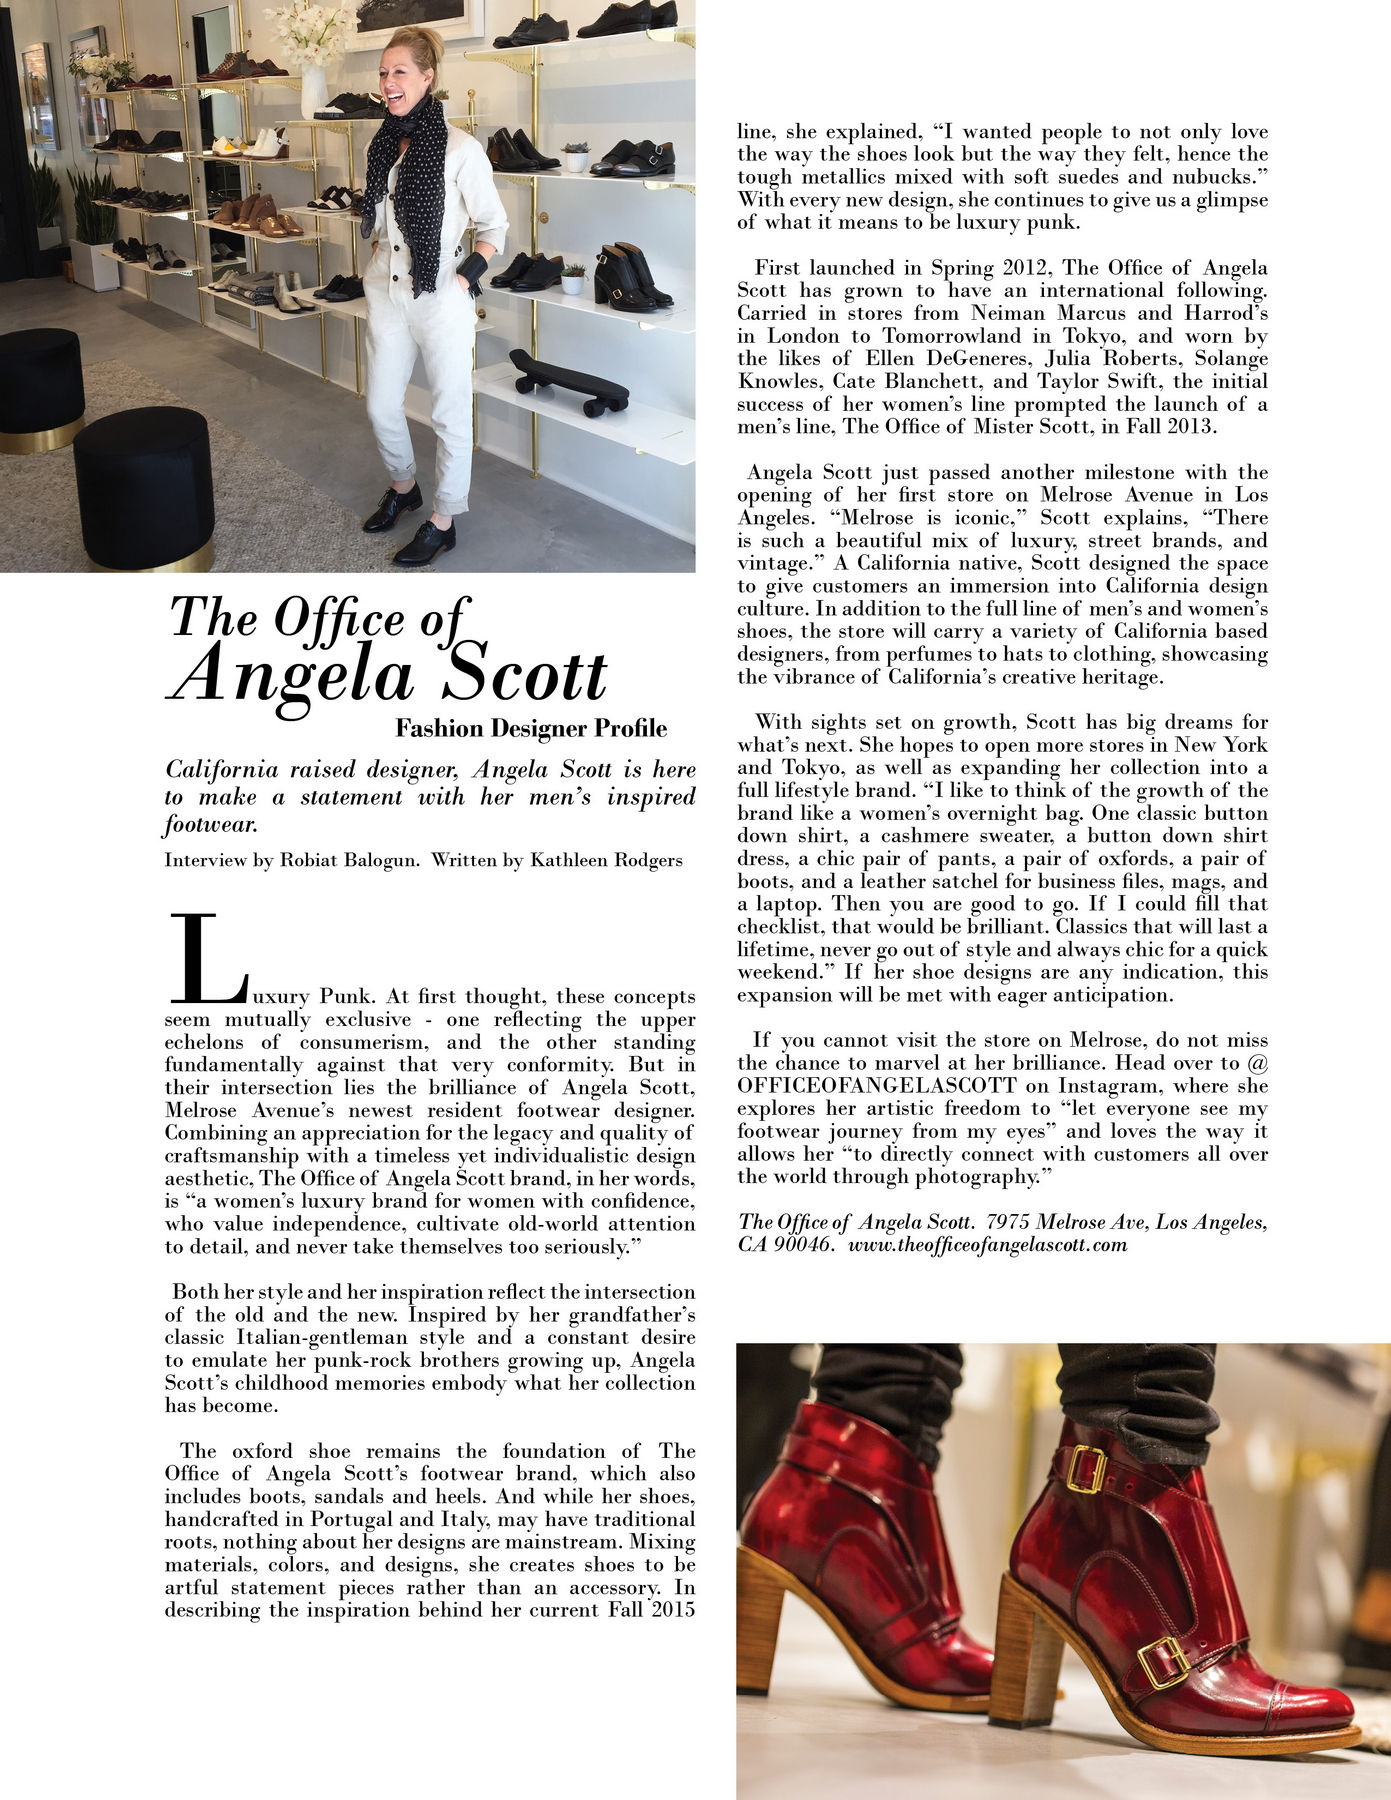 Fashion Designer Profile: The Office of Angela Scott